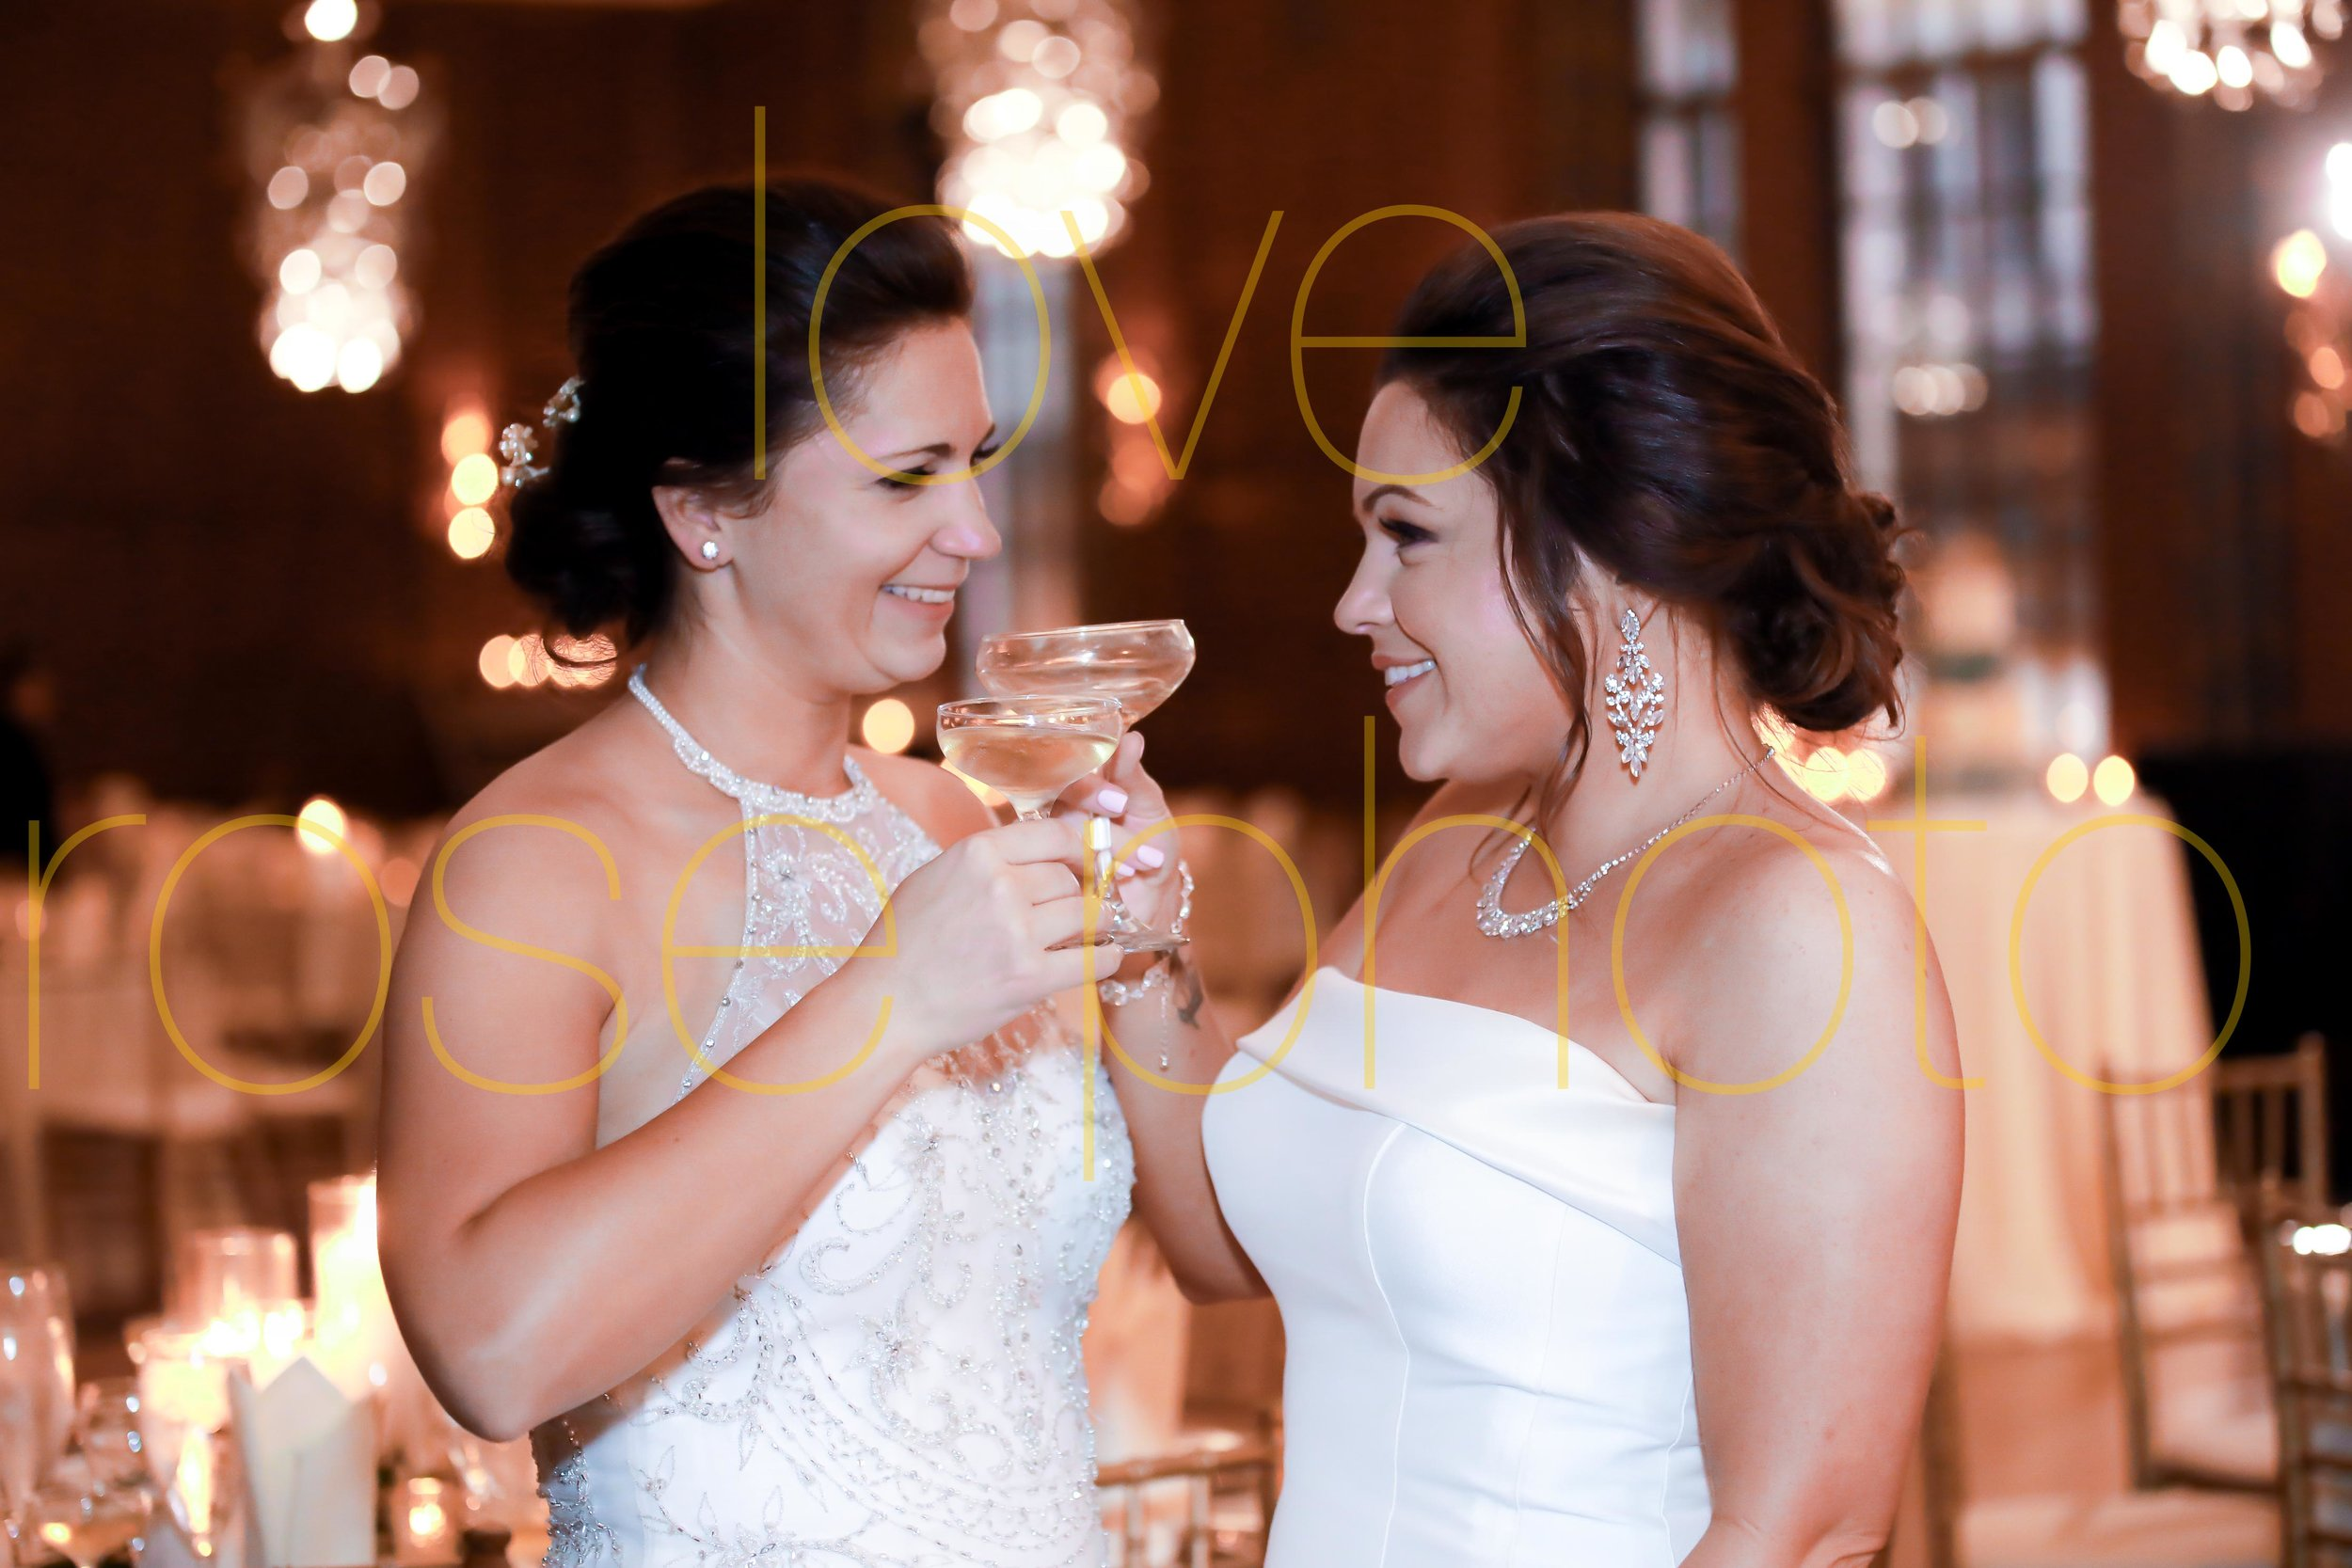 sophie + melissa love rose photo gay wedding chicago pride 2019 -68.jpg